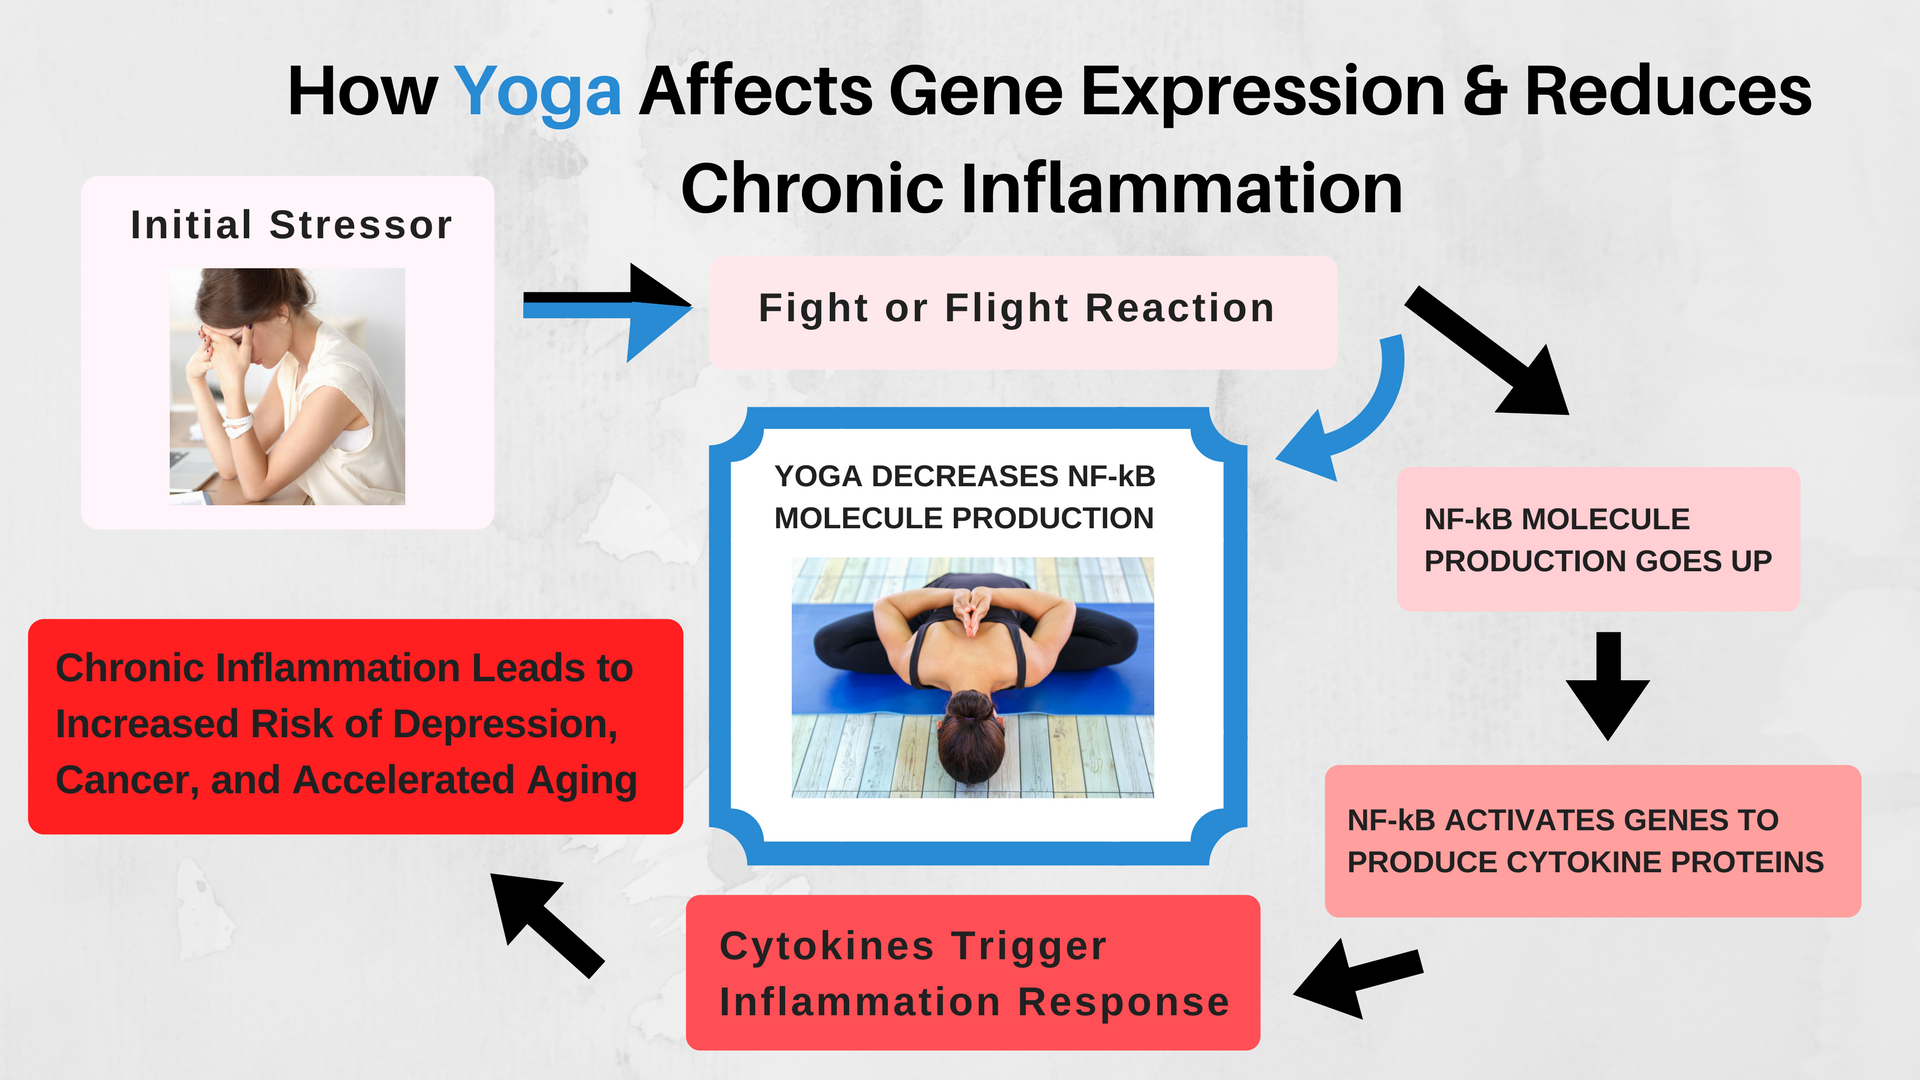 Yoga and inflammation